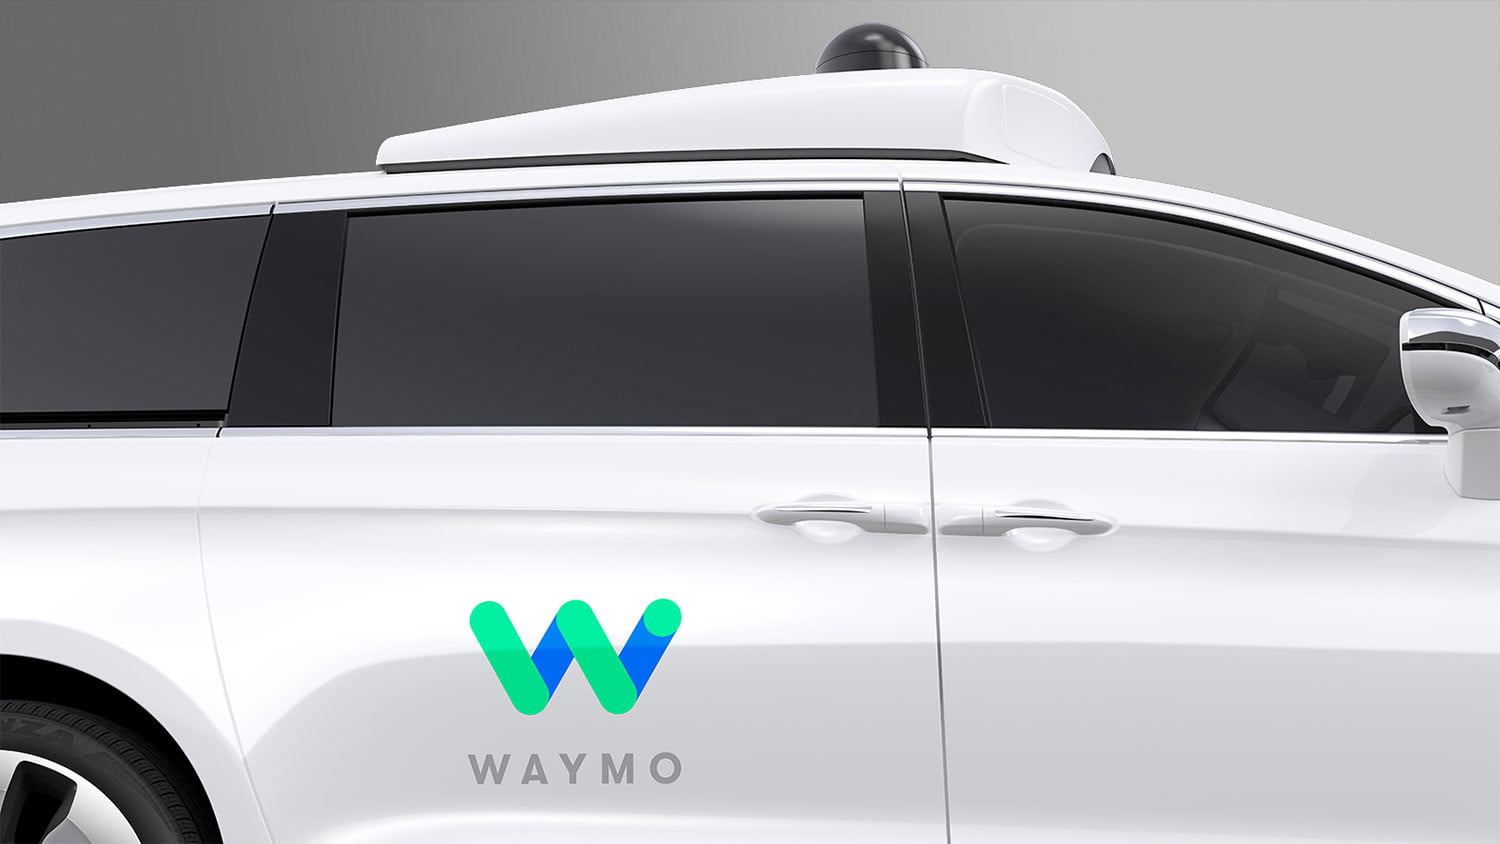 Google's Waymo project is practicing around emergency vehicles